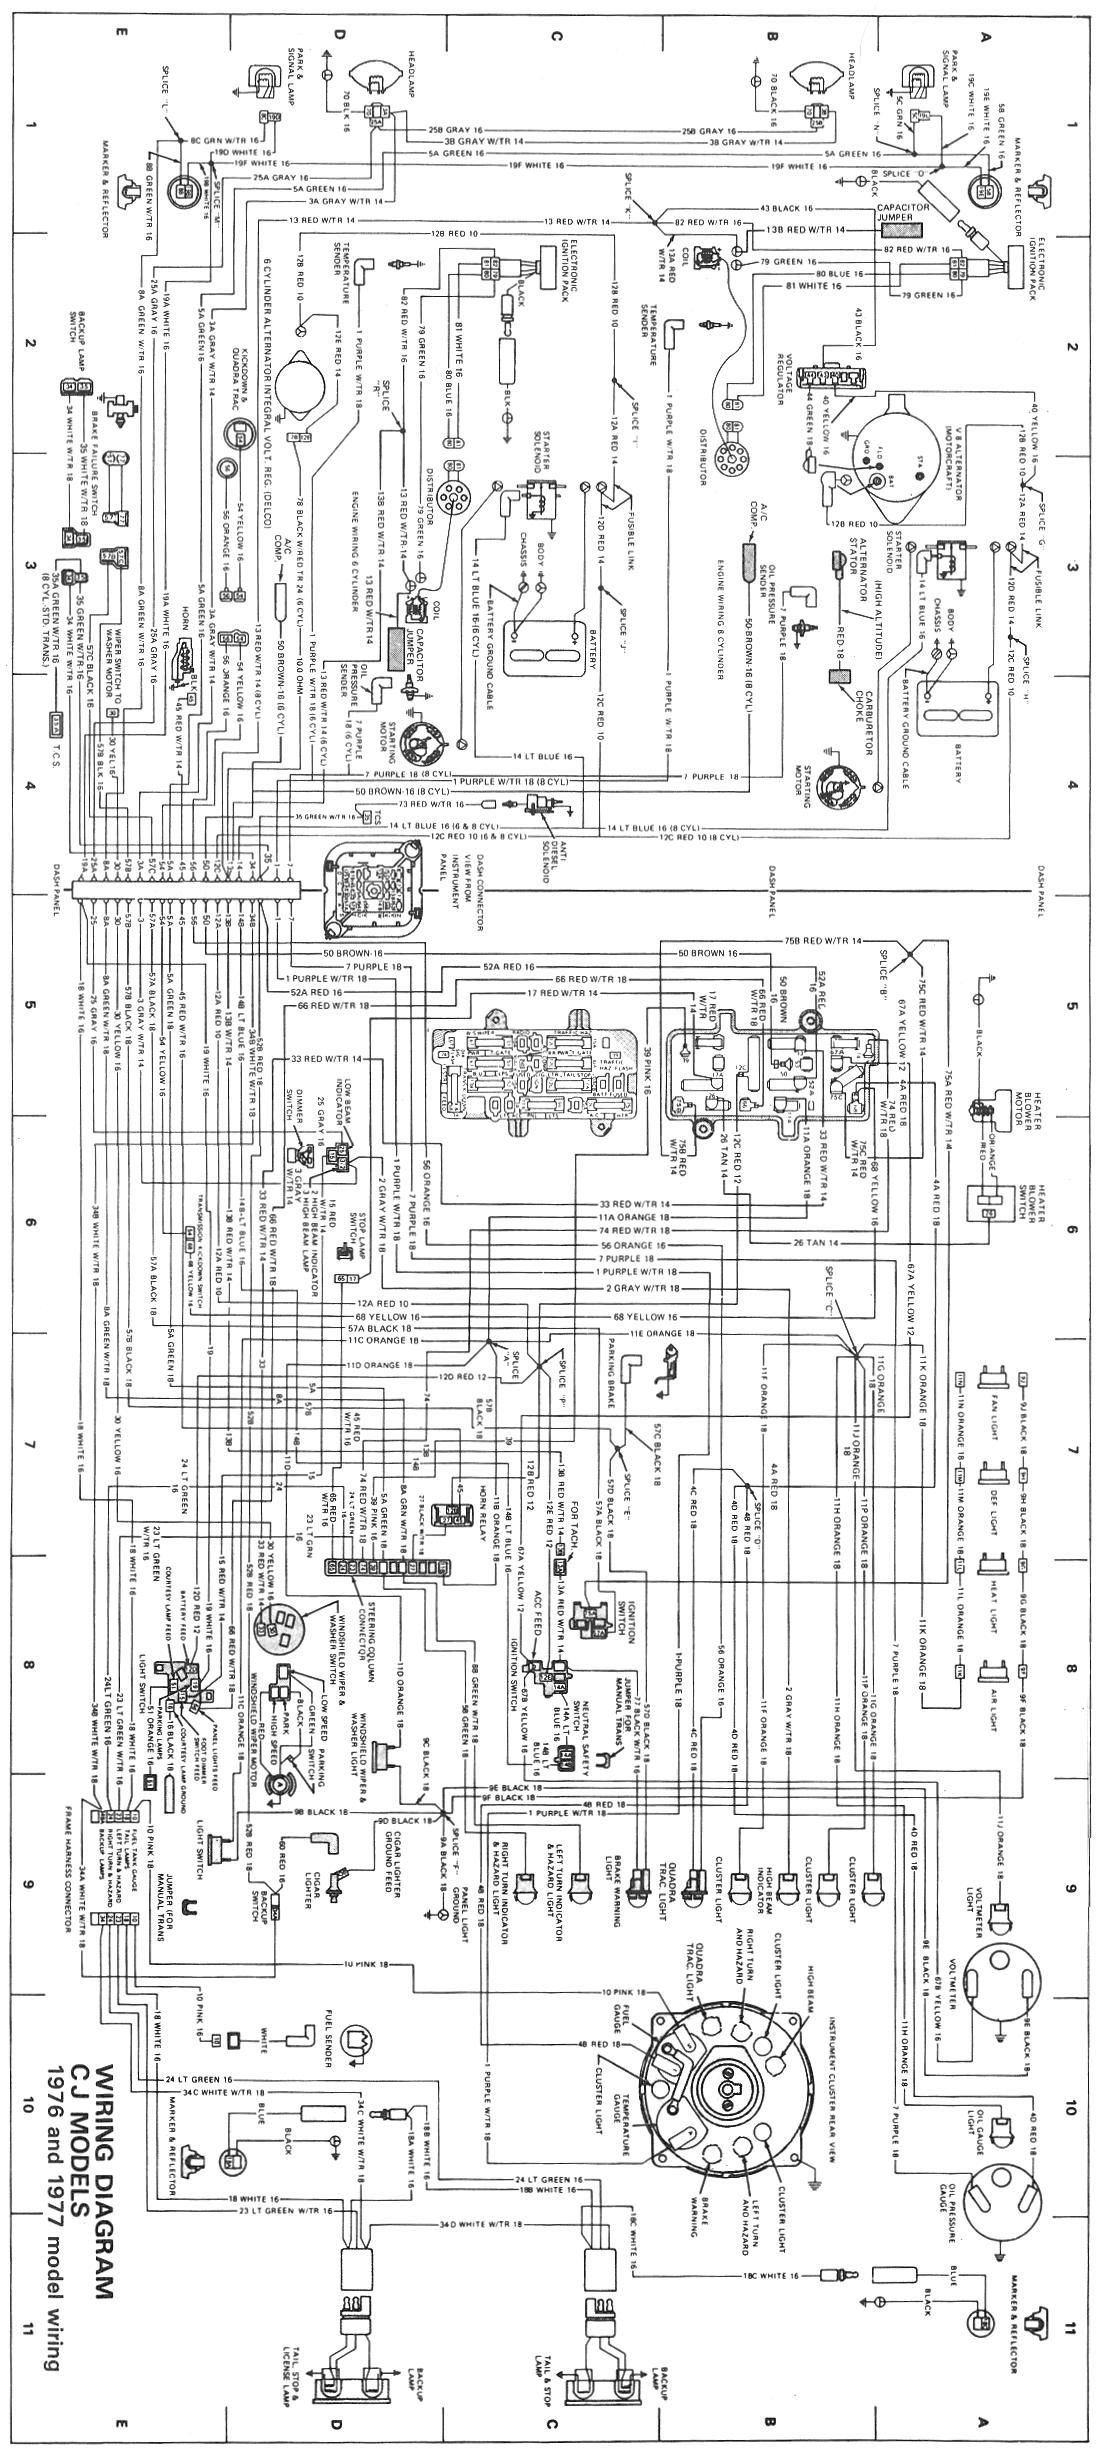 Jeep Cj7 Engine Wiring Harness Diagram - Wiring Diagram Ops Jeep Cj Engine Wiring Diagram on